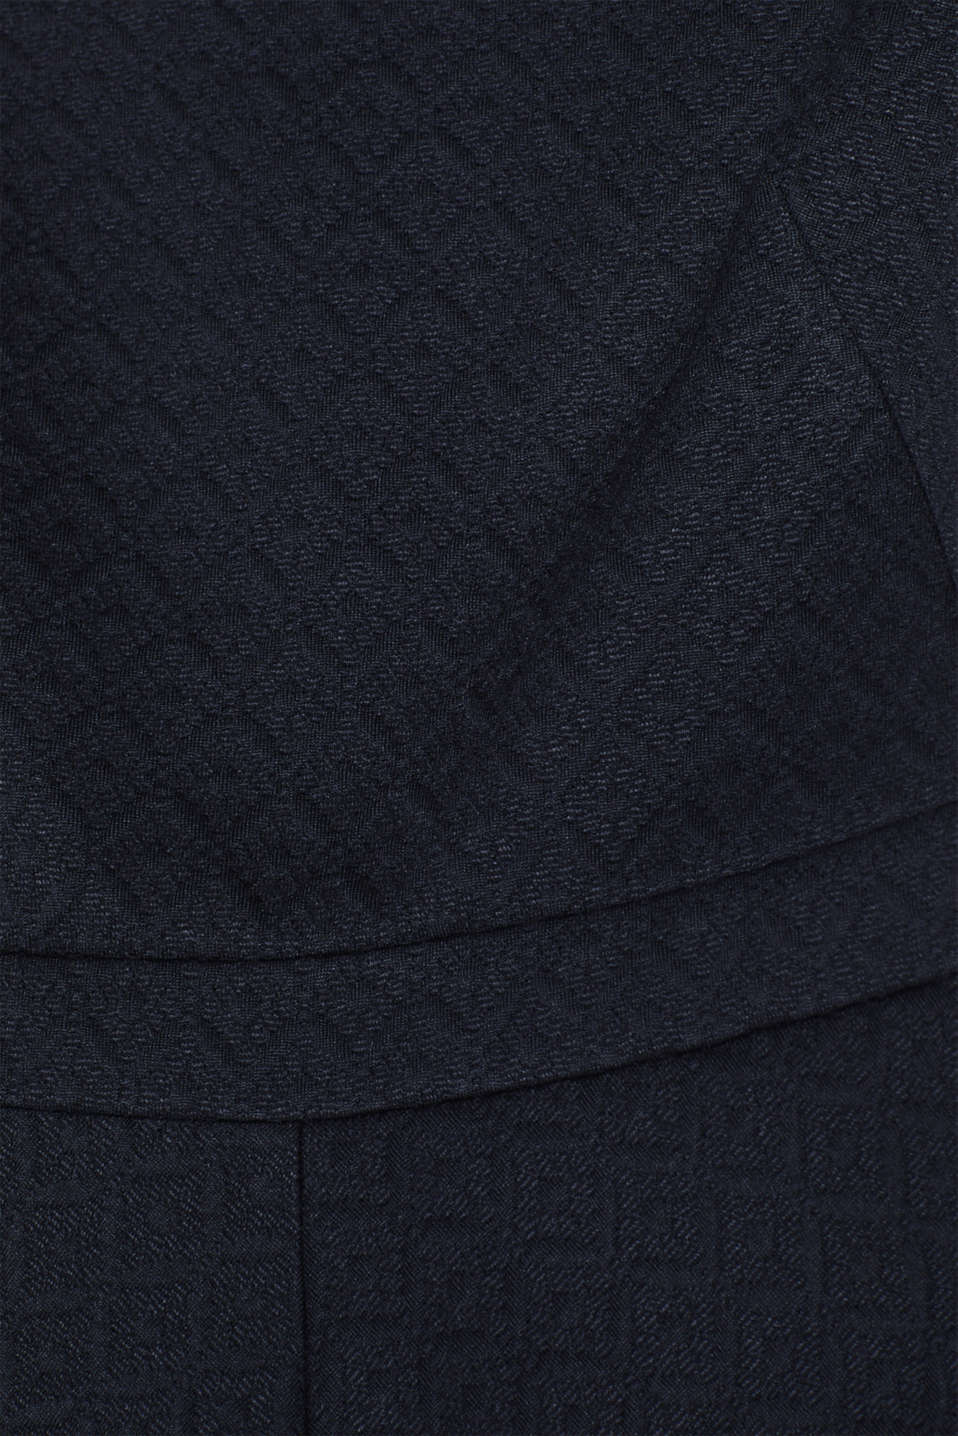 Textured stretch jersey dress, NAVY, detail image number 4